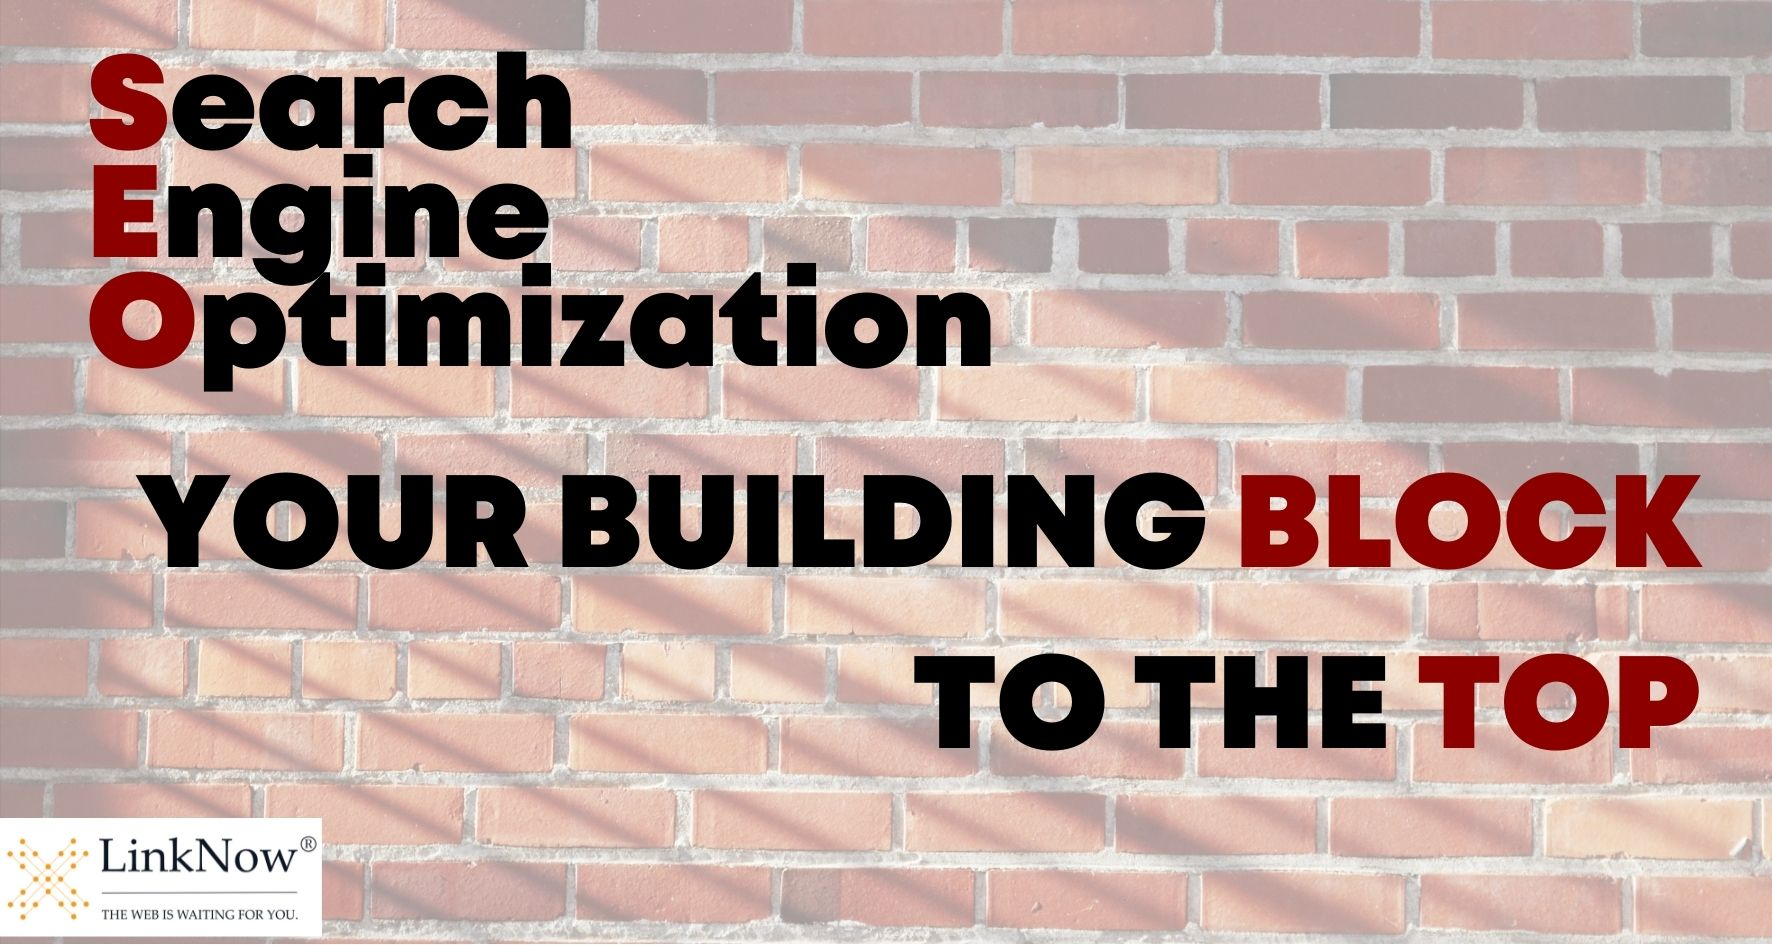 Search engine optimization: your building block to the top.